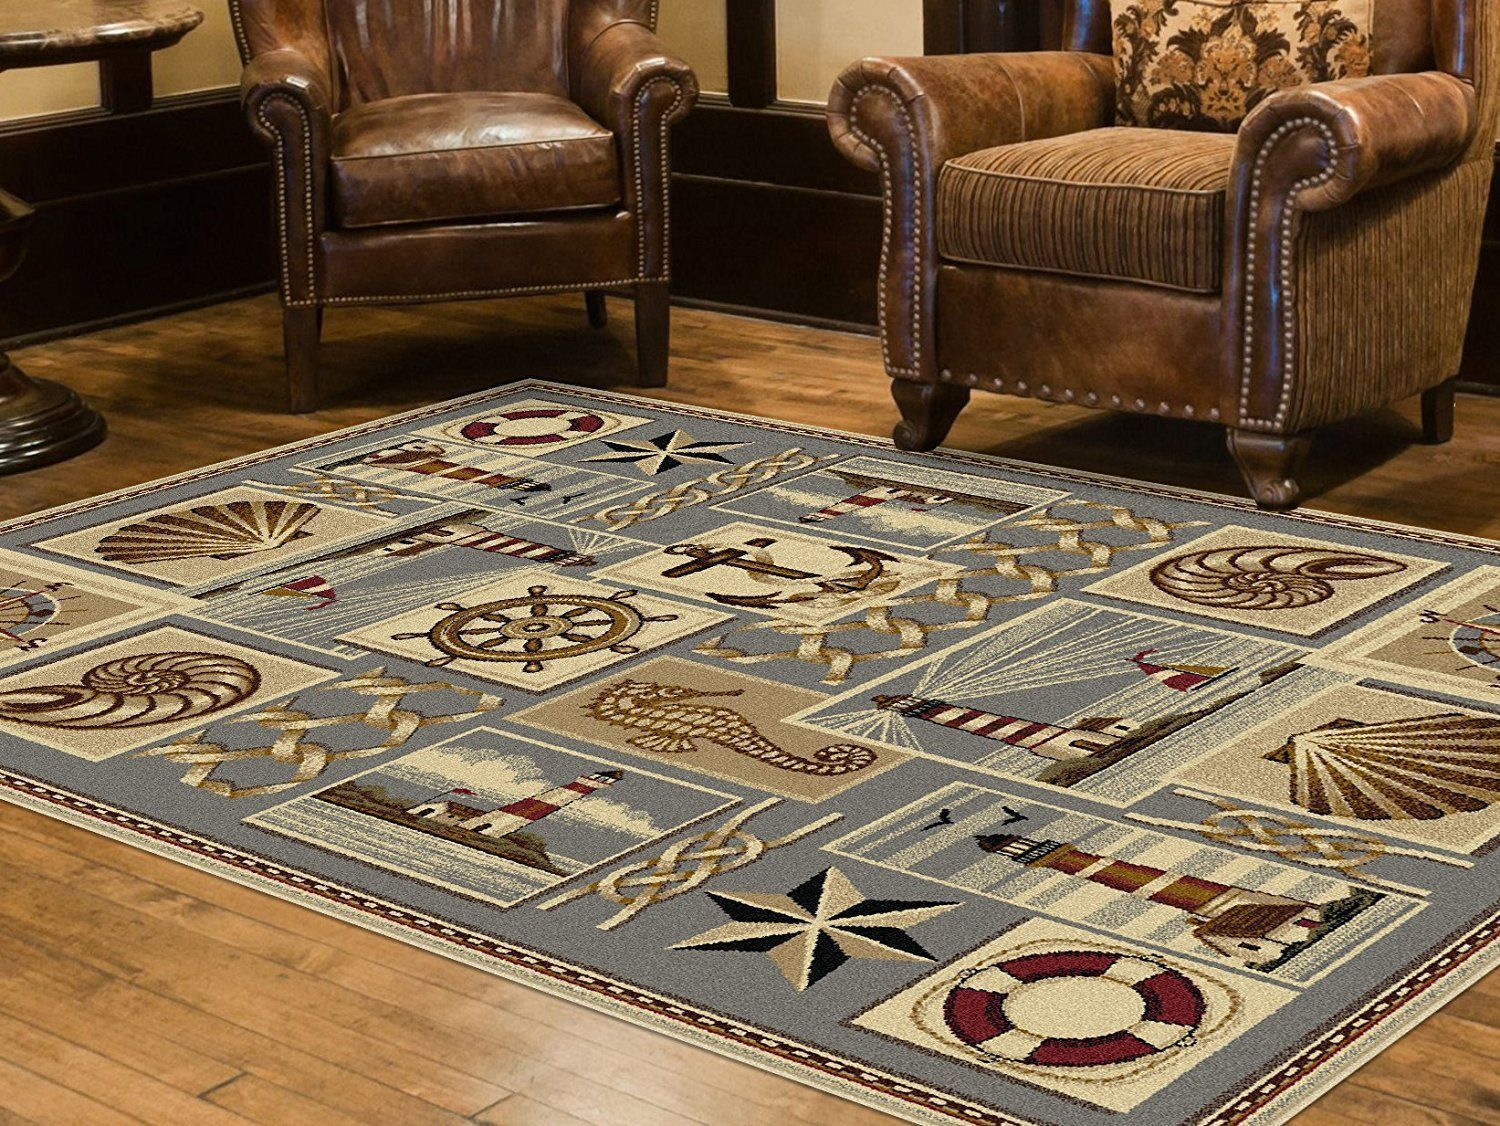 Nautical Area Rugs Discover Our Favorite Themed For Your Coastal Home Favoritearearugs